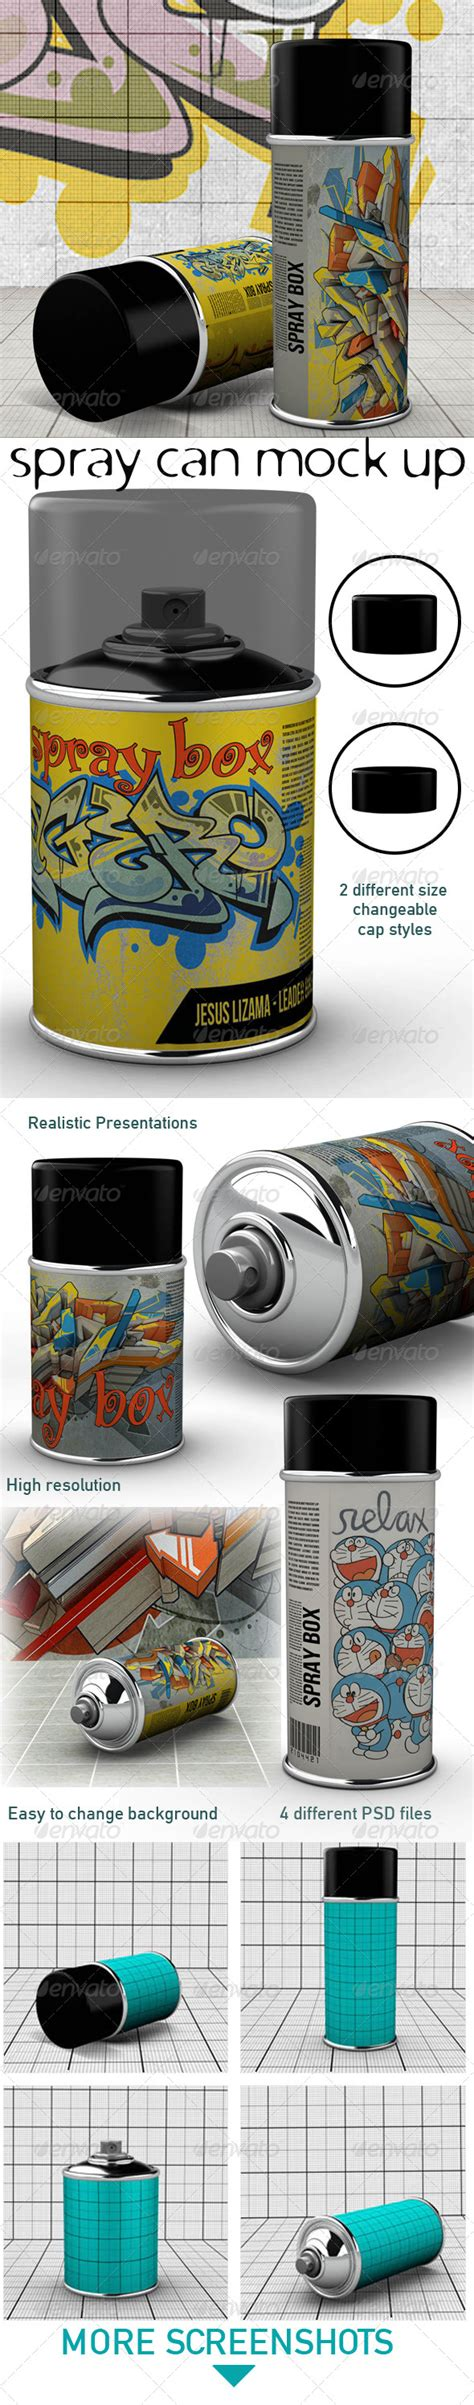 spray paint mockup spray can mock up hardcast de